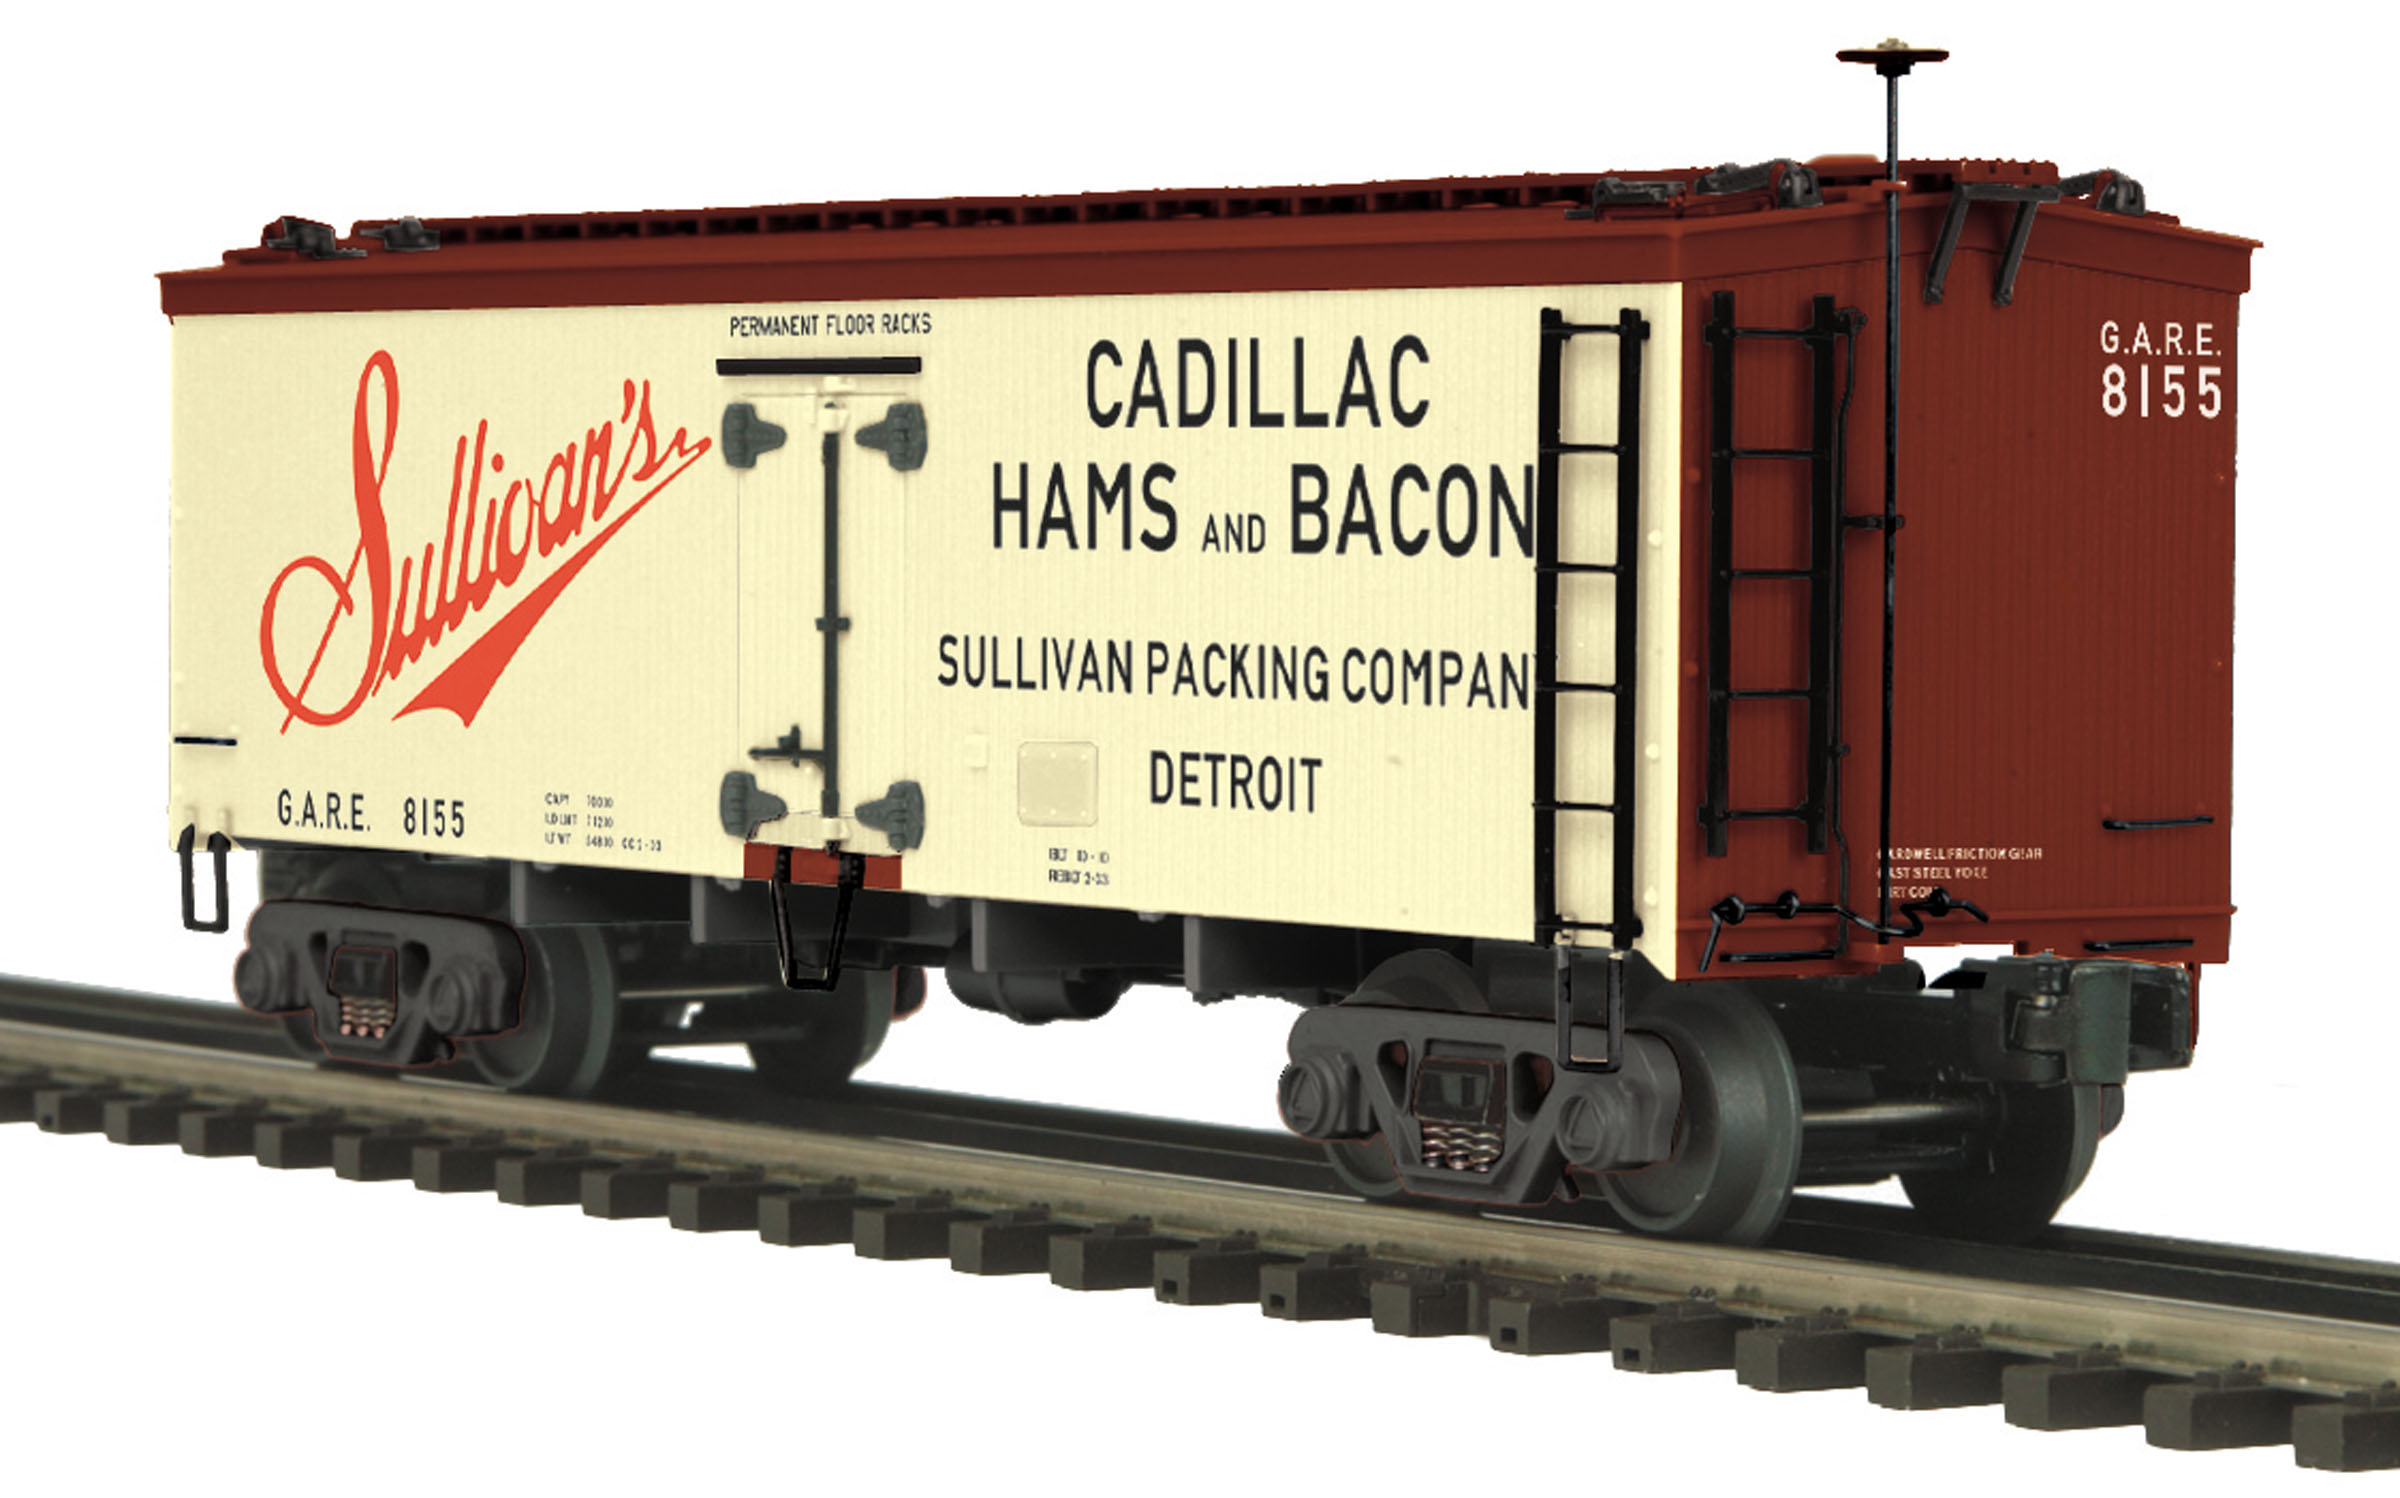 MTH 20-94377 O Sullivans Packing 36' Woodside Reefer This is MTH 20-94377 O Sullivans Packing 36' Woodside Reefer. 36' woodsided reefer car, Sullivan's Packing. Car numbers: 8155, 8150. The coming of the railroad changed the way America ate and drank. Before the iron horse connected every town of any importance to the outside world, most food was grown or produced locally. The arrival of cheap, fast, refrigerated transport - in the form of the woodsided reefer with ice bunkers at each end - enabled local brewers, diaries, meat processors, and other food businesses to become players on a national scale.Until 1934, shippers could advertise their wares on leased billboard reefers, each a hand-painted traveling work of art. That year, the Interstate Commerce Commission outlawed the flamboyant paint schemes because the cars often hauled shipments from other companies - whose freight bills thus unfairly paid to advertise the lessee's products.What doomed the billboard cars was truth in labeling. Depending on shipping needs, billboard cars often carried loads for customers other than the company named on the car sides. A beer company requesting an empty reefer for loading, for example, might find a cheese maker's delivered to its door. Shippers were not happy when their product was carried in a car bearing a large ad for someone else's product - they complained that their freight bill had in part paid for another company's advertising.Responding to these complaints, the Interstate Commerce Commission in July 1934 mandated the phasing out of billboard reefers and ruled that thereafter, the lessee's name on a car could be no more than 12 high. By law, all billboard reefers were removed from service by January, 1937, although many soldiered on in drabber paint schemes as late as the 1960s.MTH Premier O Scale freight cars are the perfect complement to any manufacturer's scale proportioned O Gauge locomotives. Whether you prefer to purchase cars separatel